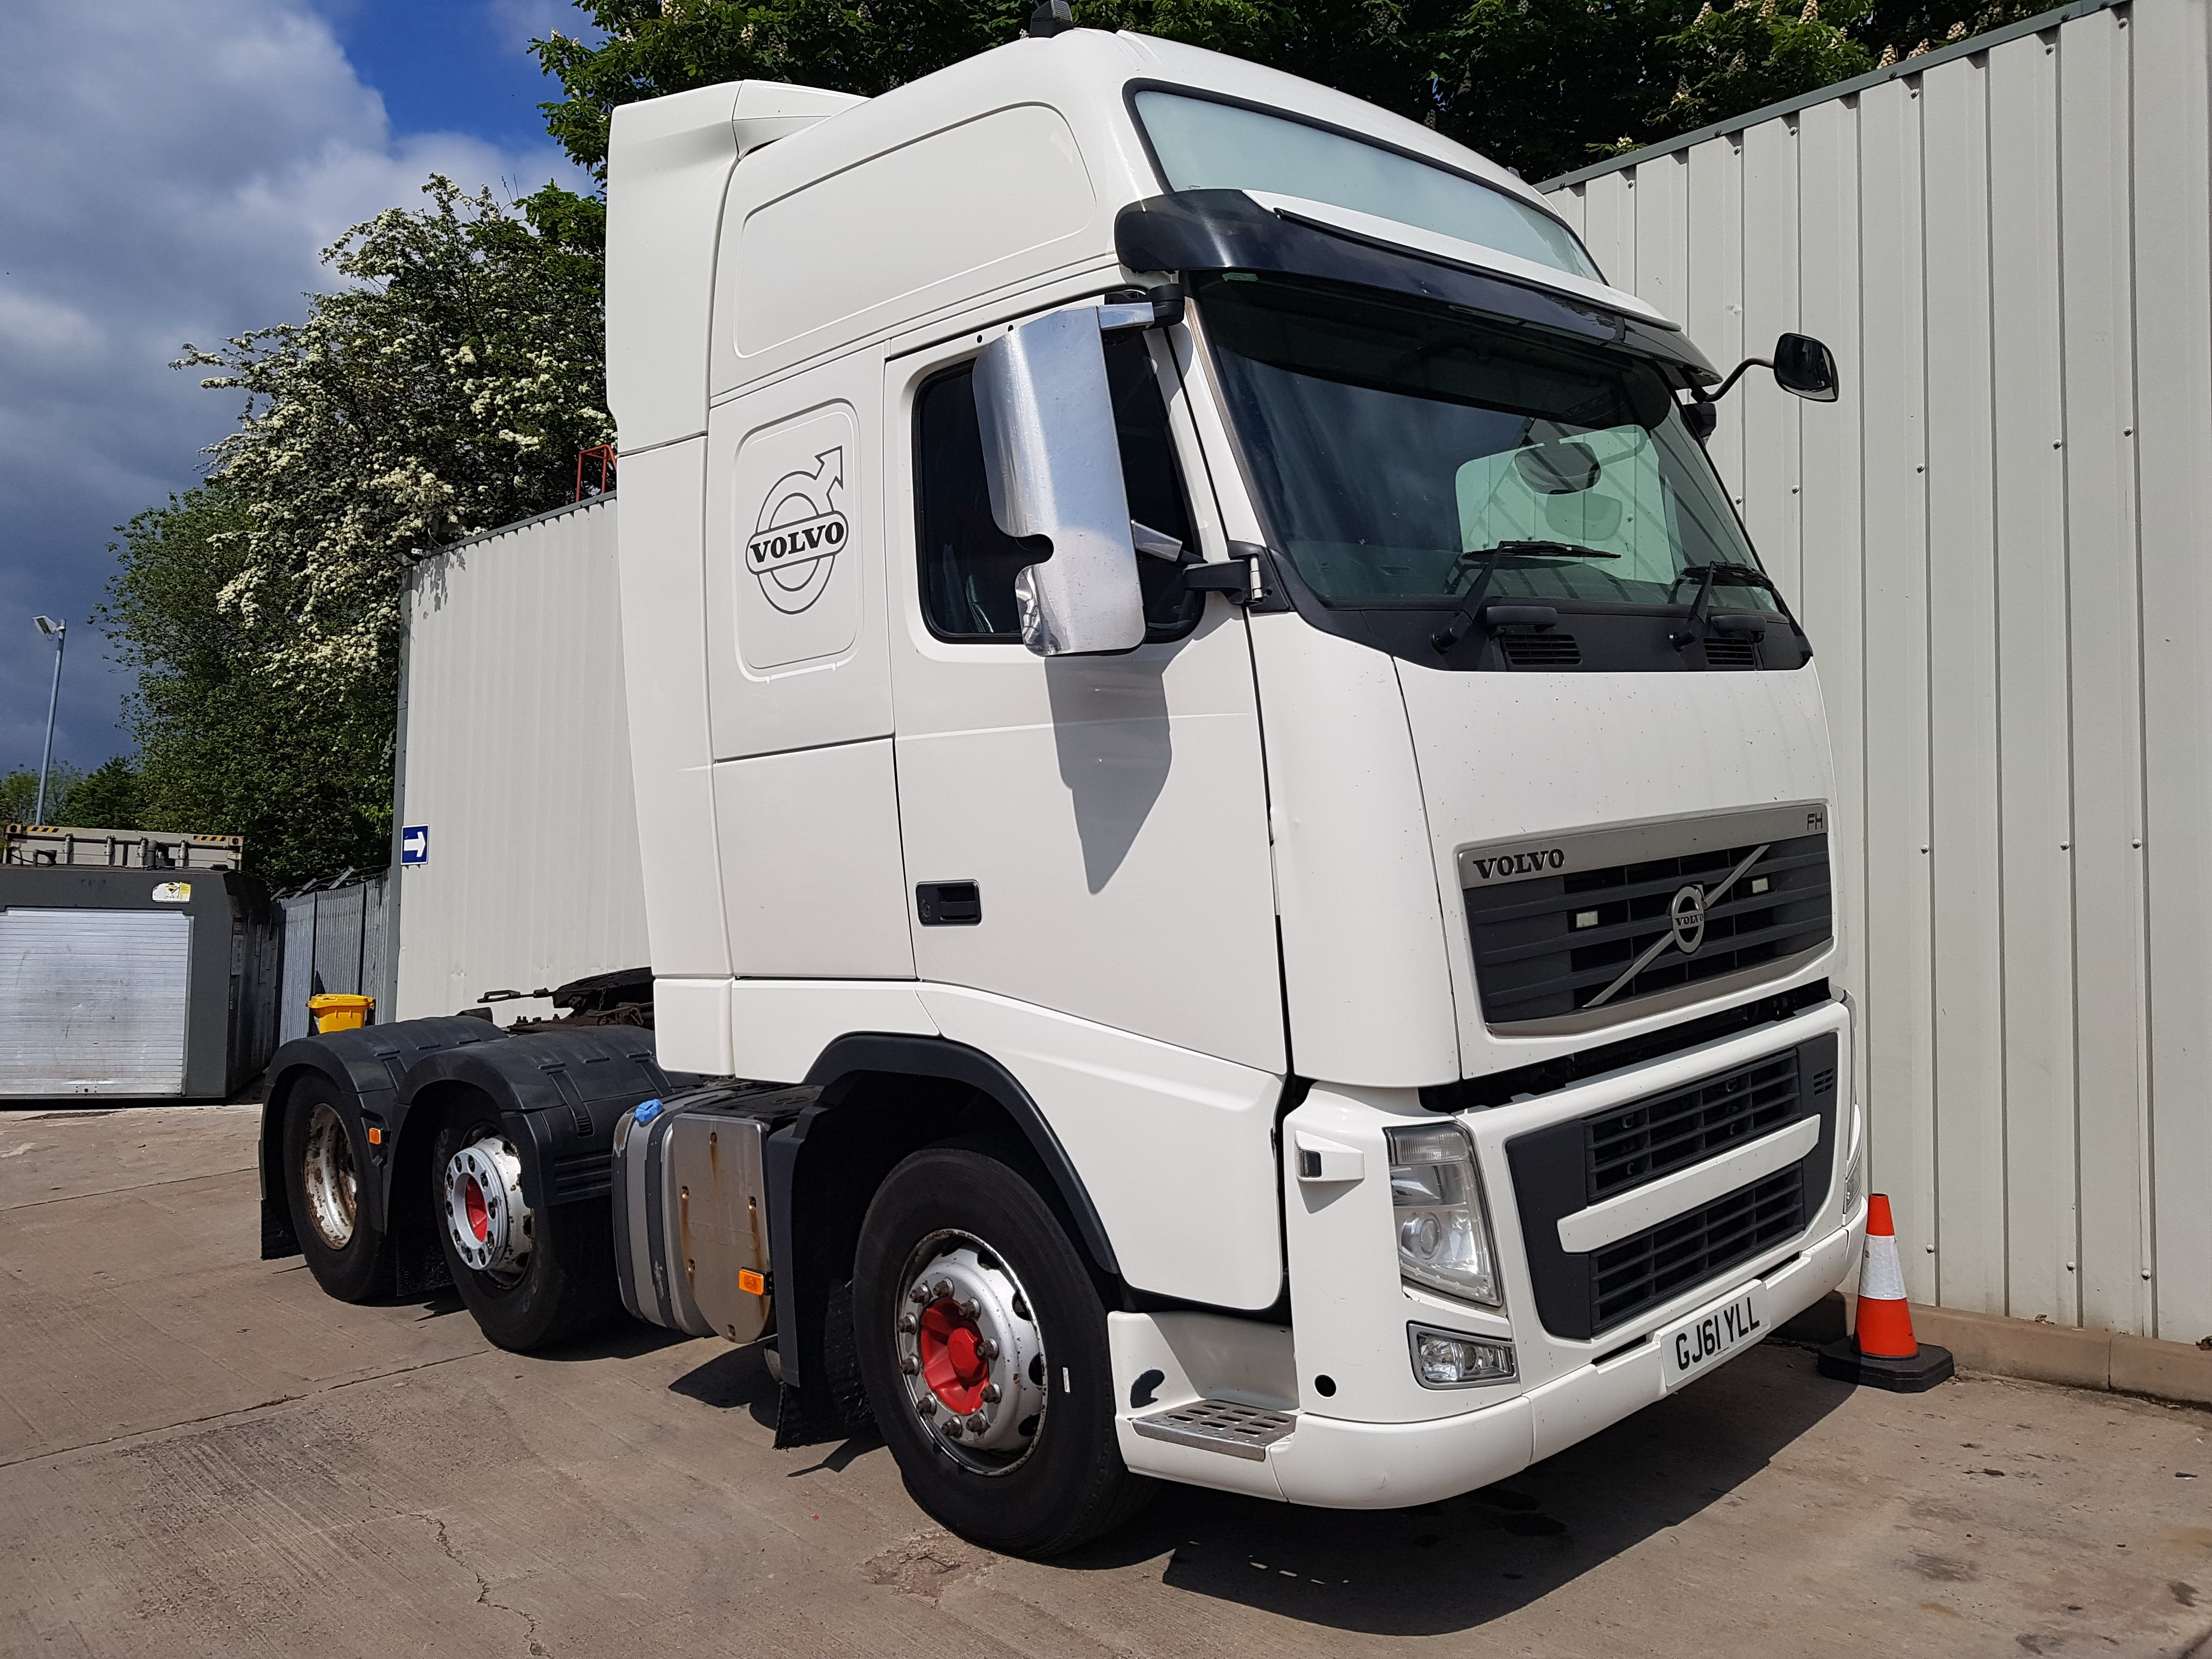 2011 Volvo FH500 GT XL 6X2 Tractor. Euro 5, 500hp, I shift auto box, twin sleeper XL Globetrotter cab, midlift, 972,000kms, MOT August 2019